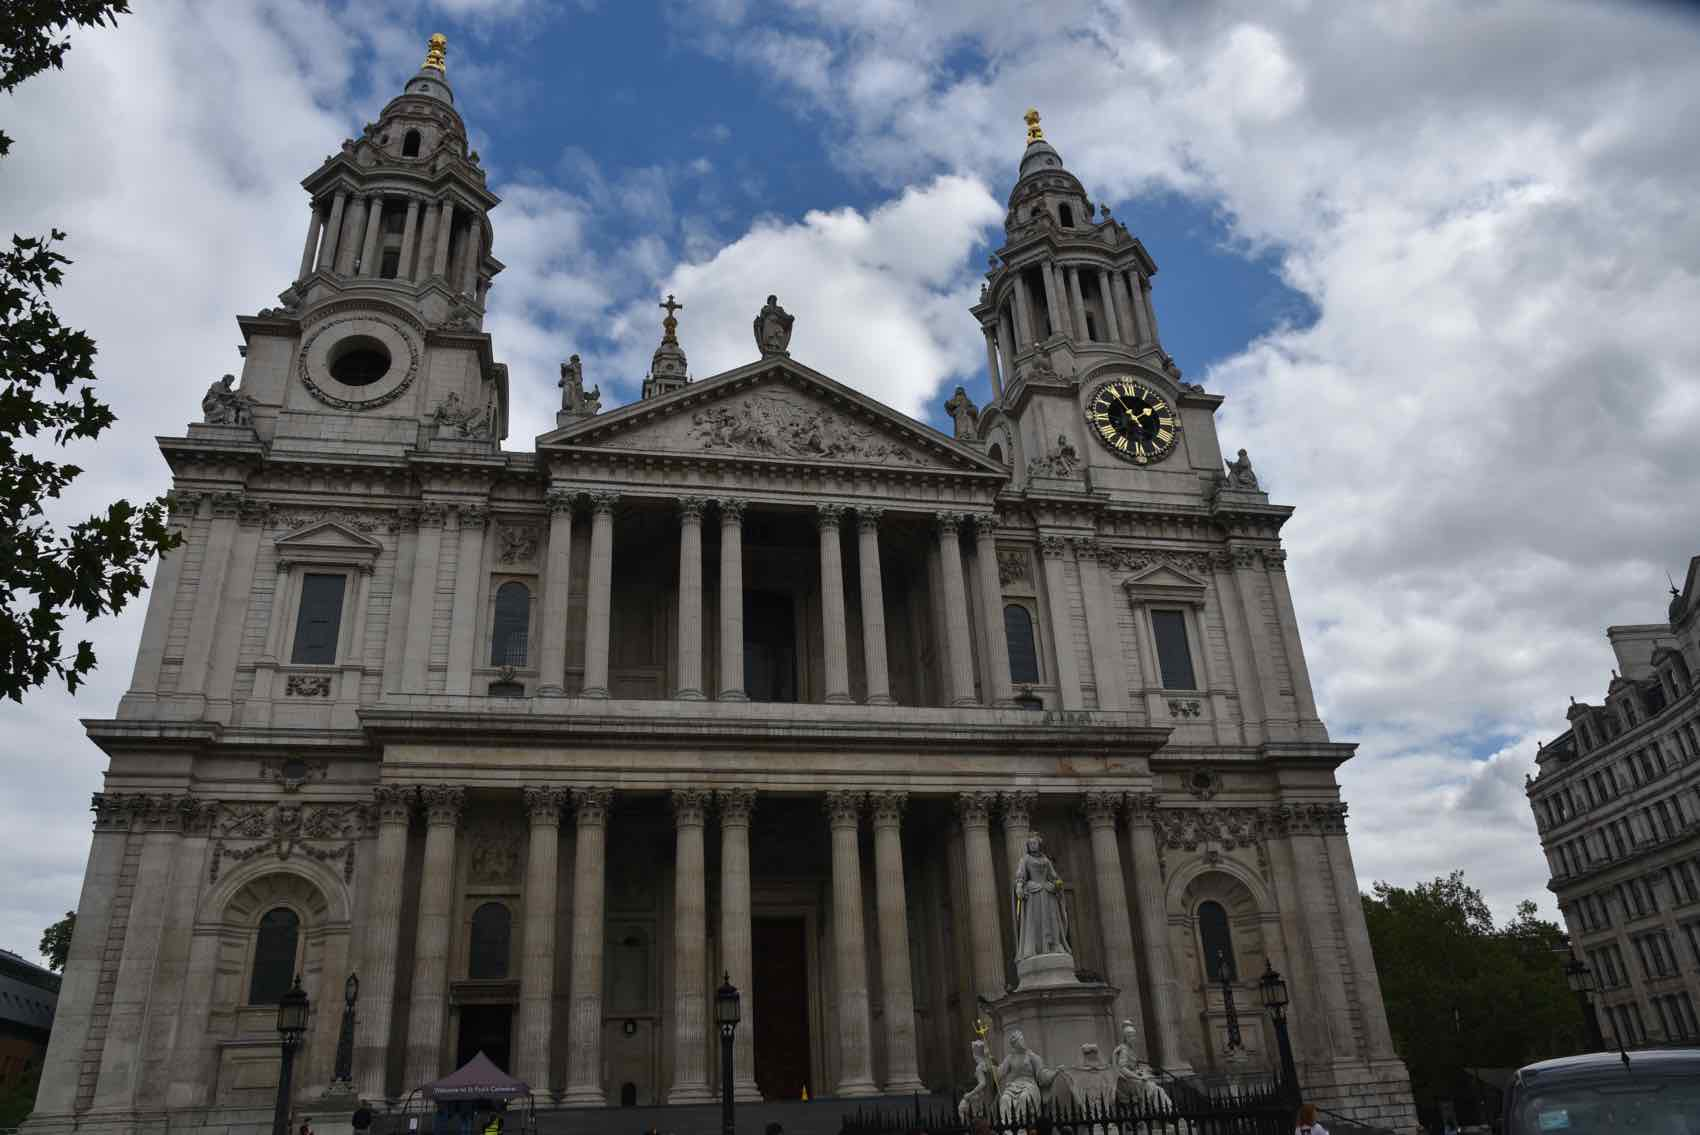 The front of St Pauls Cathedral